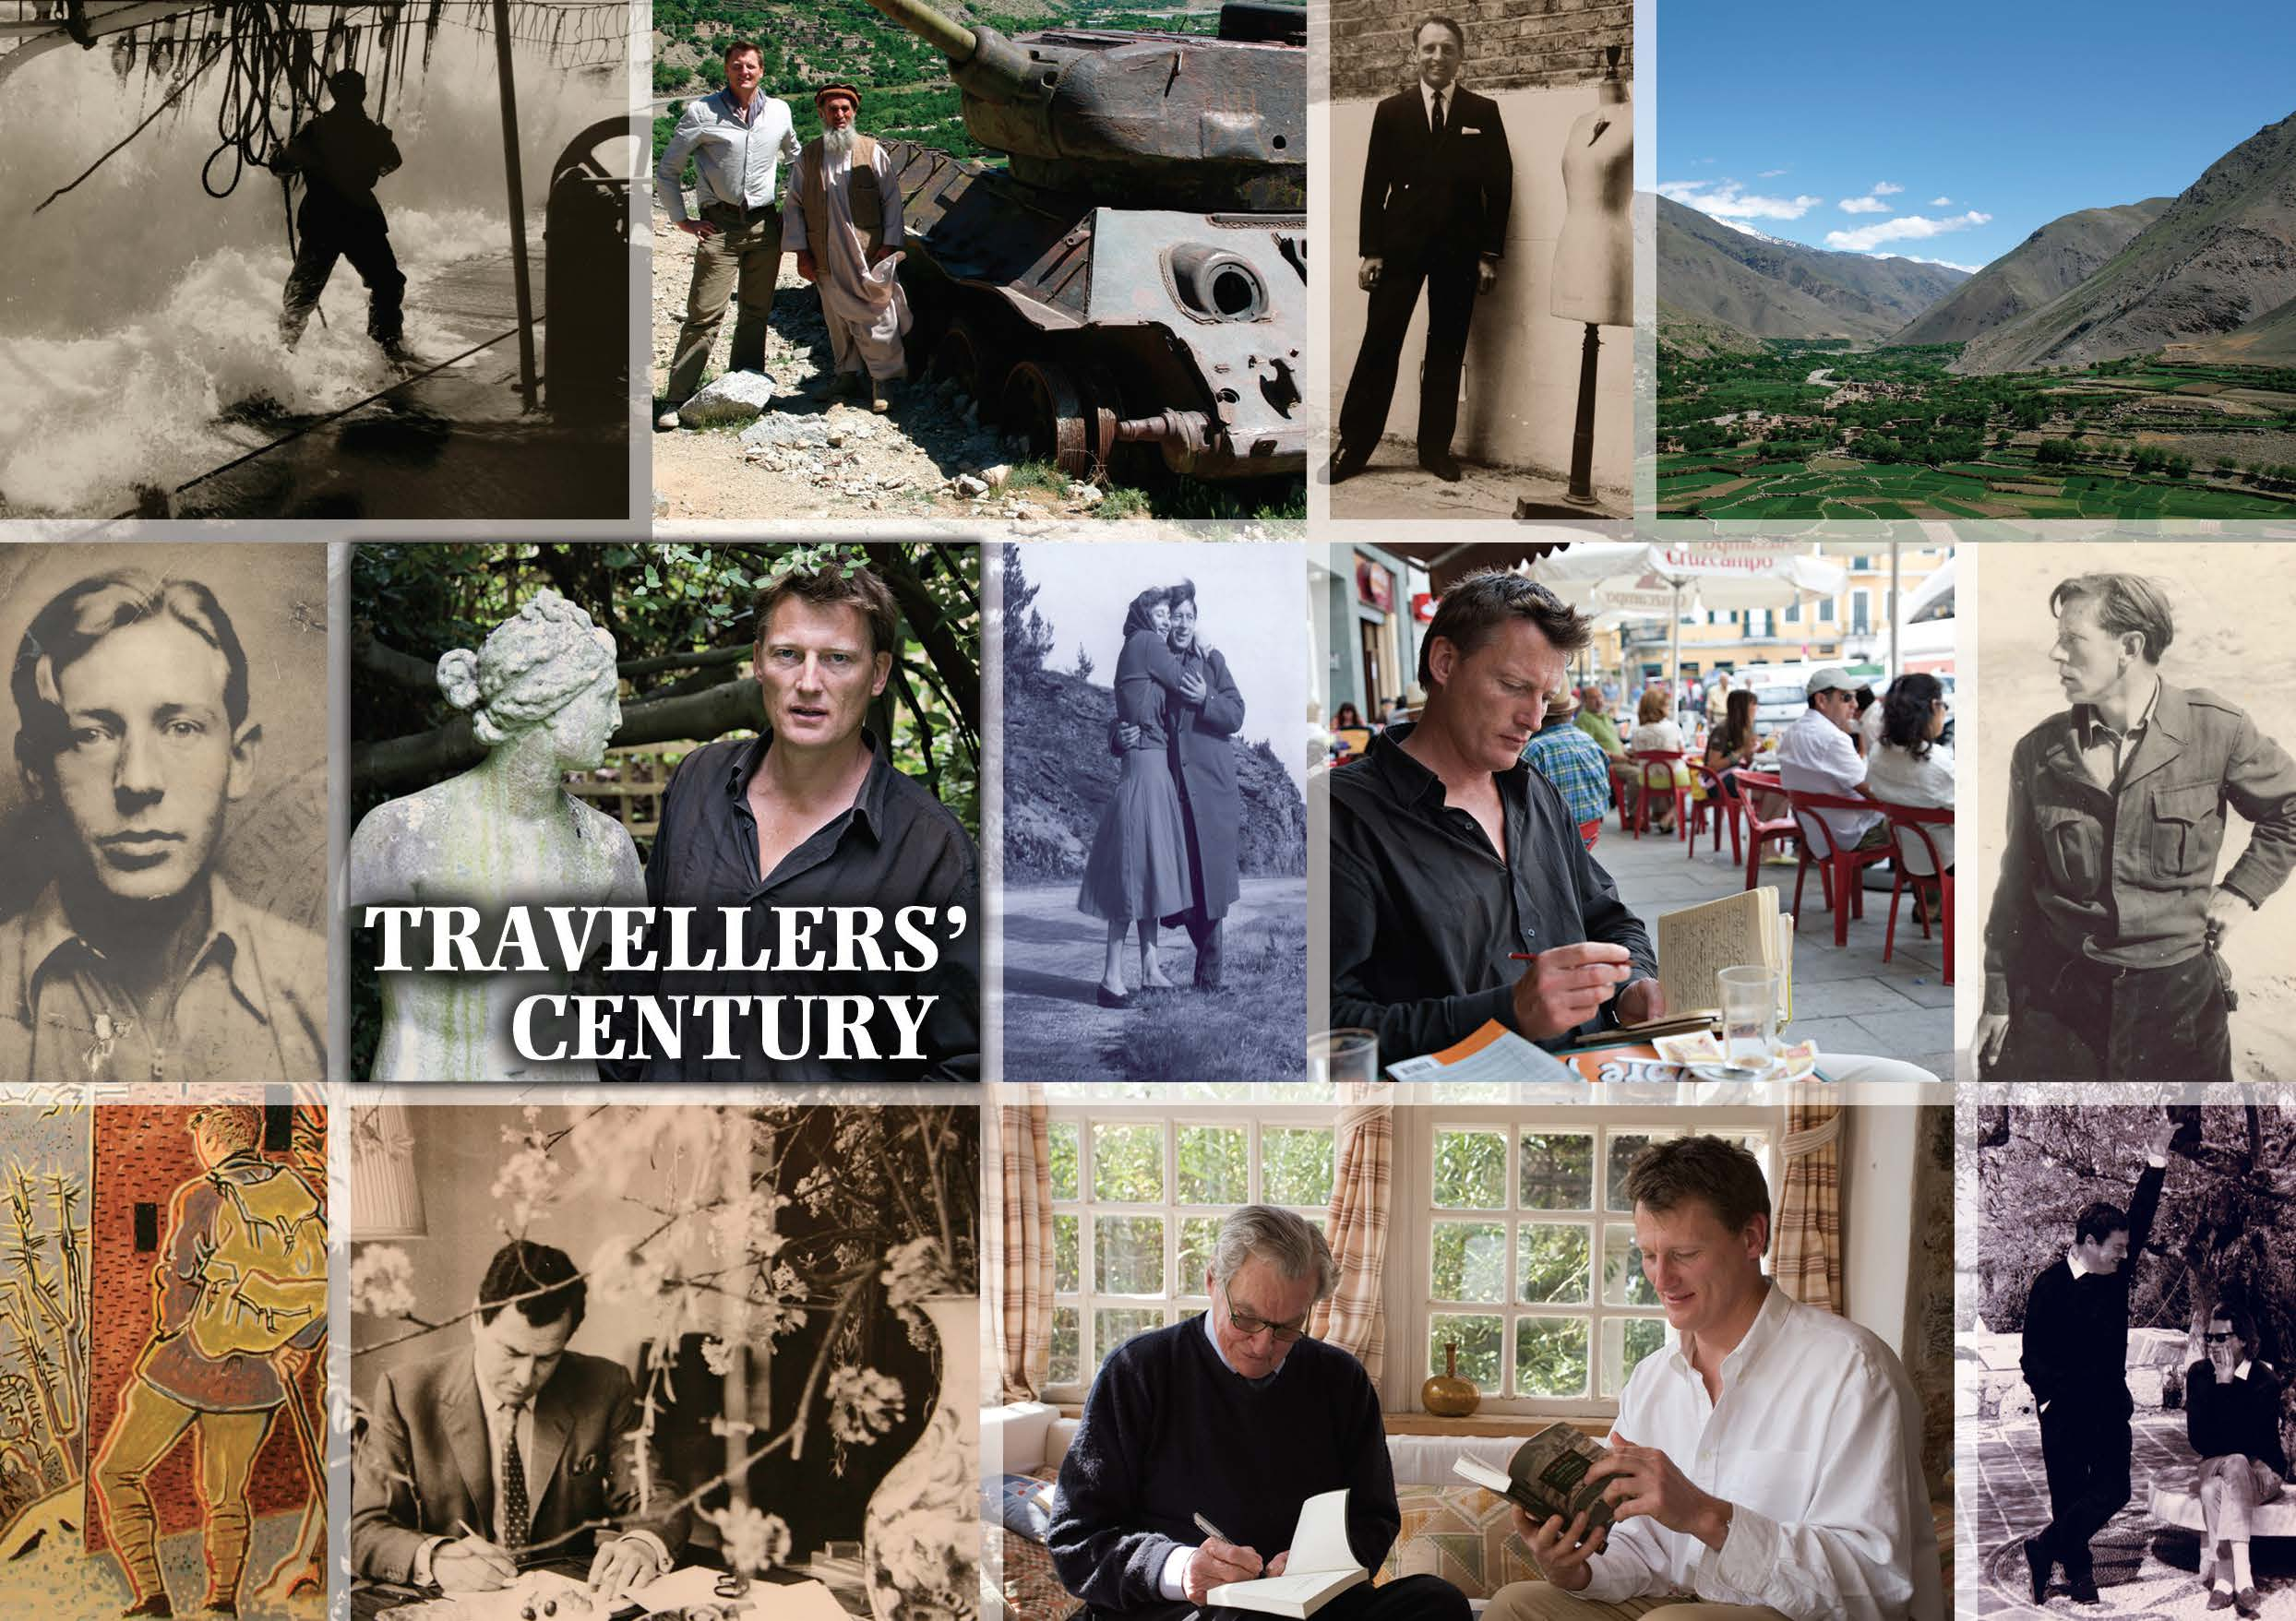 TX Card for 'Travellers' Century' by Icon Films